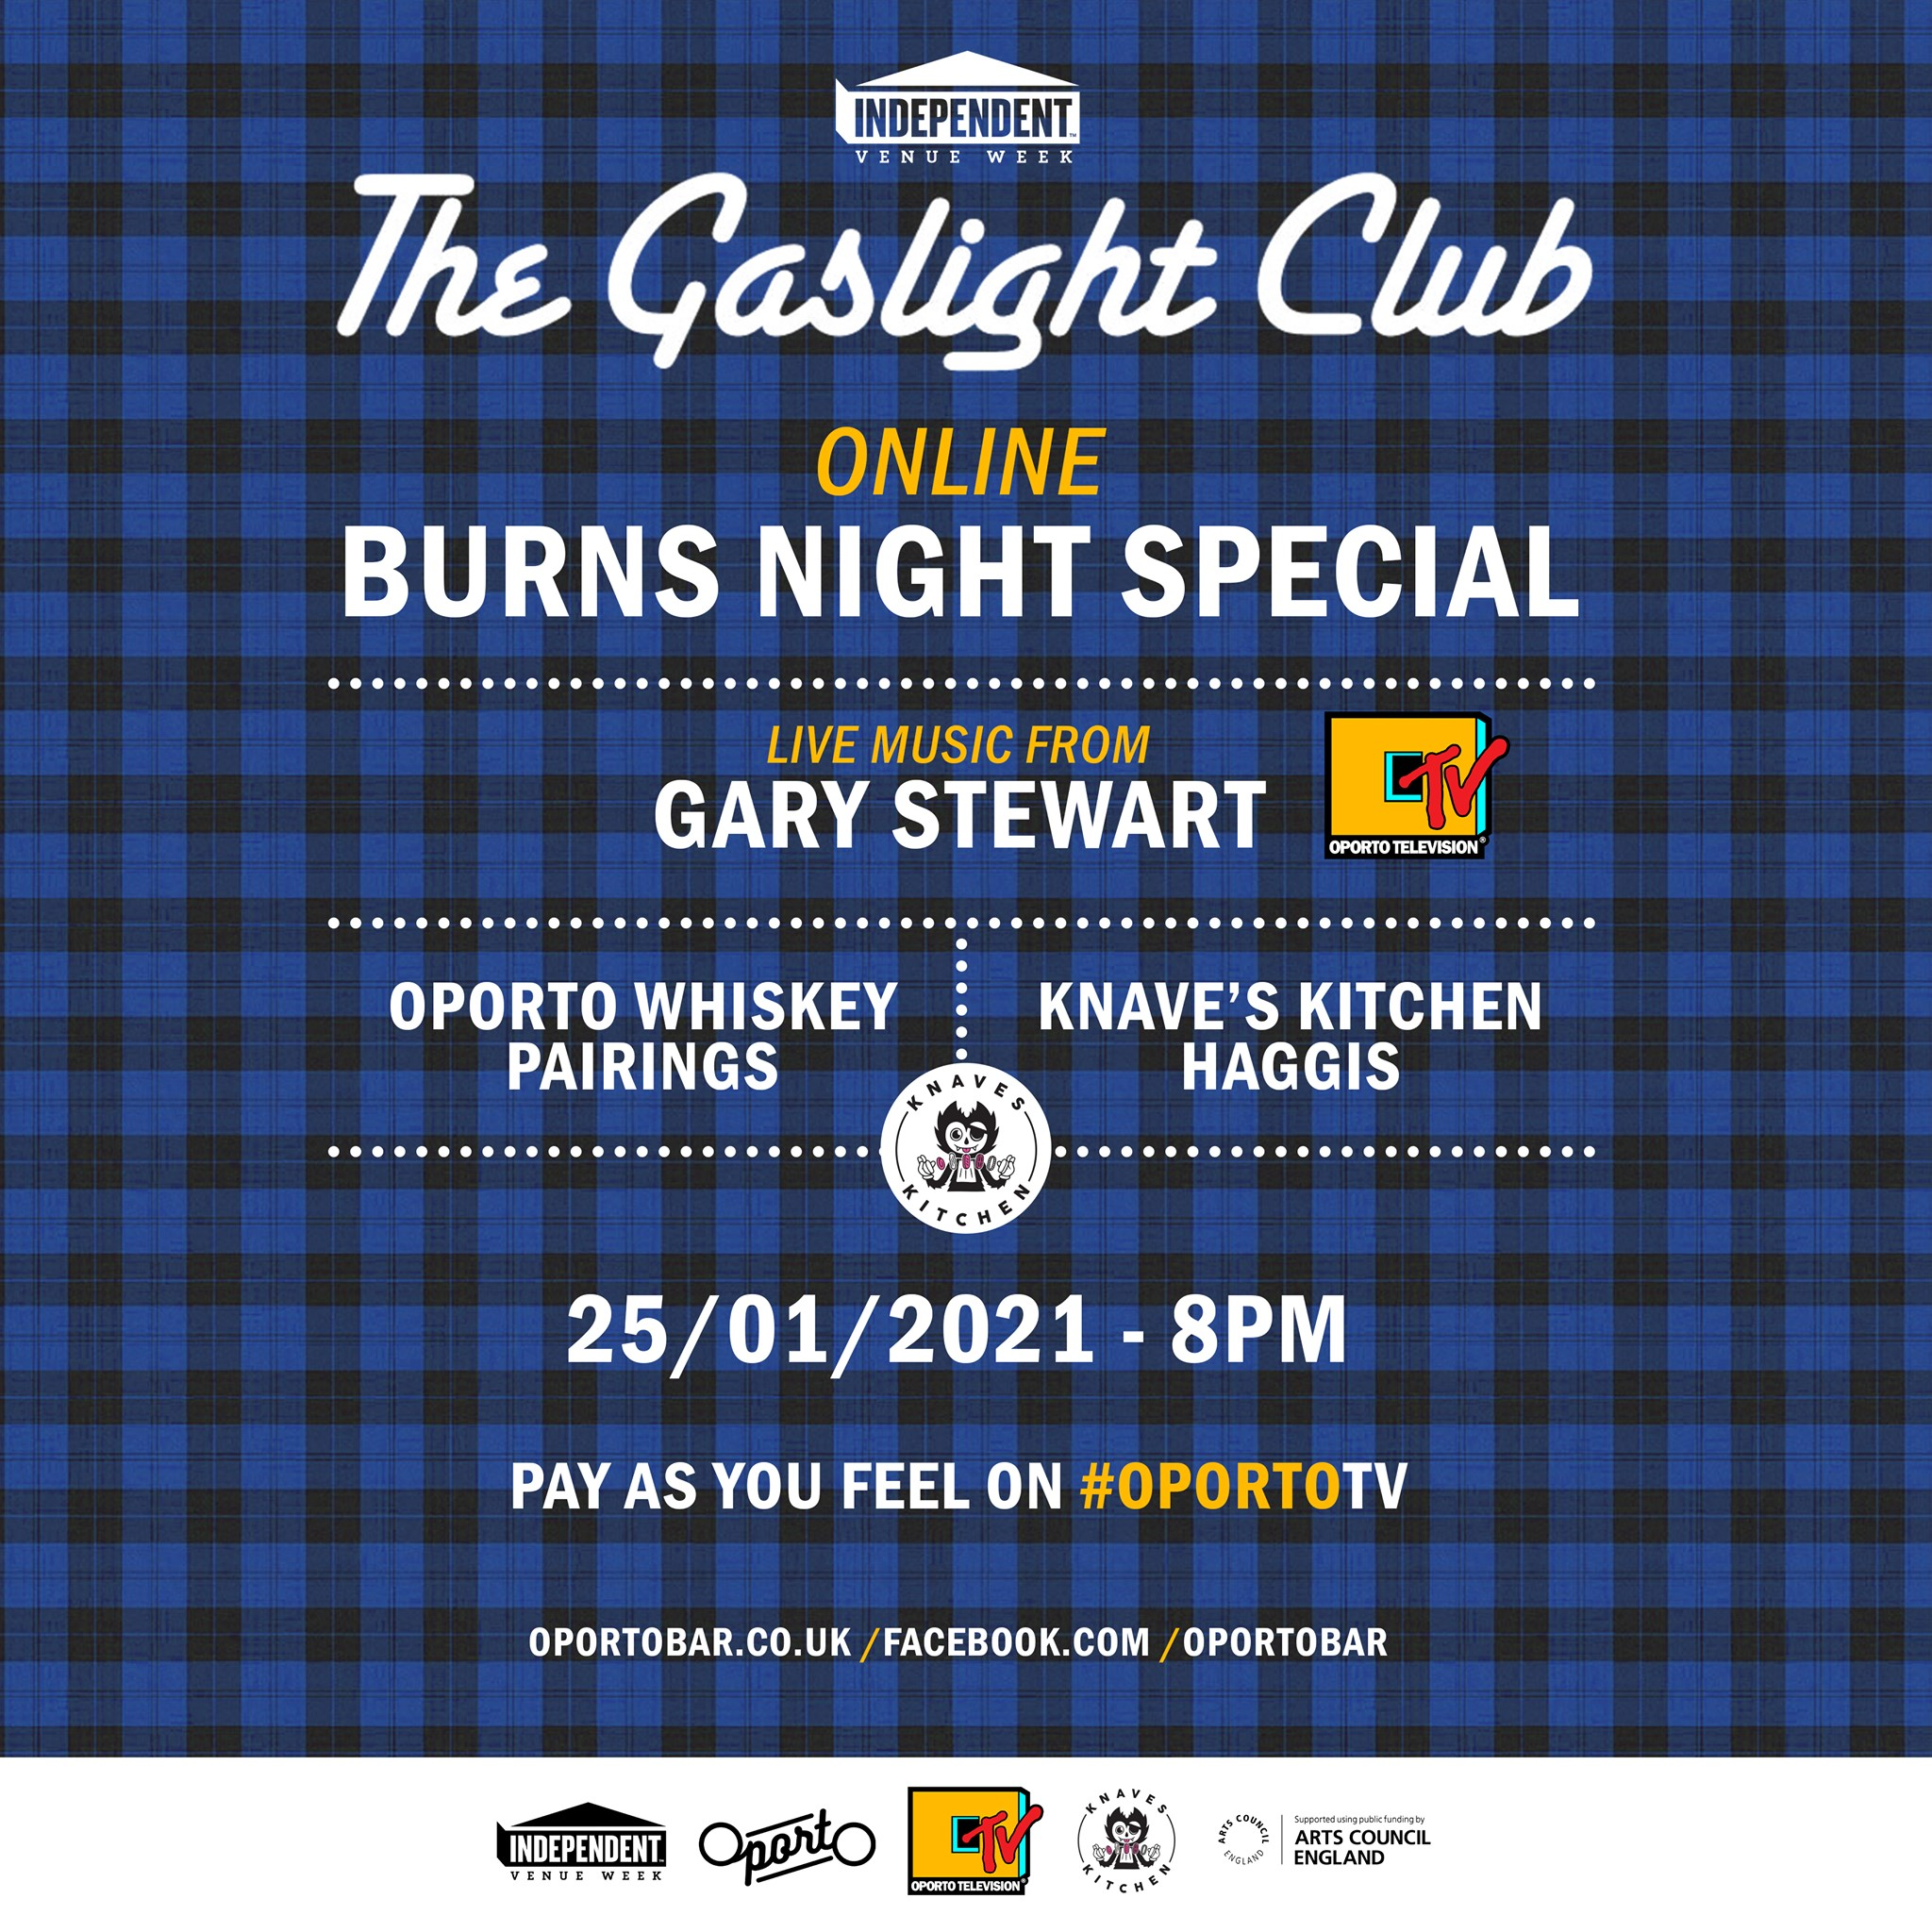 Gaslight Club Burns Night Special on #OportoTV for Independent Venue Week